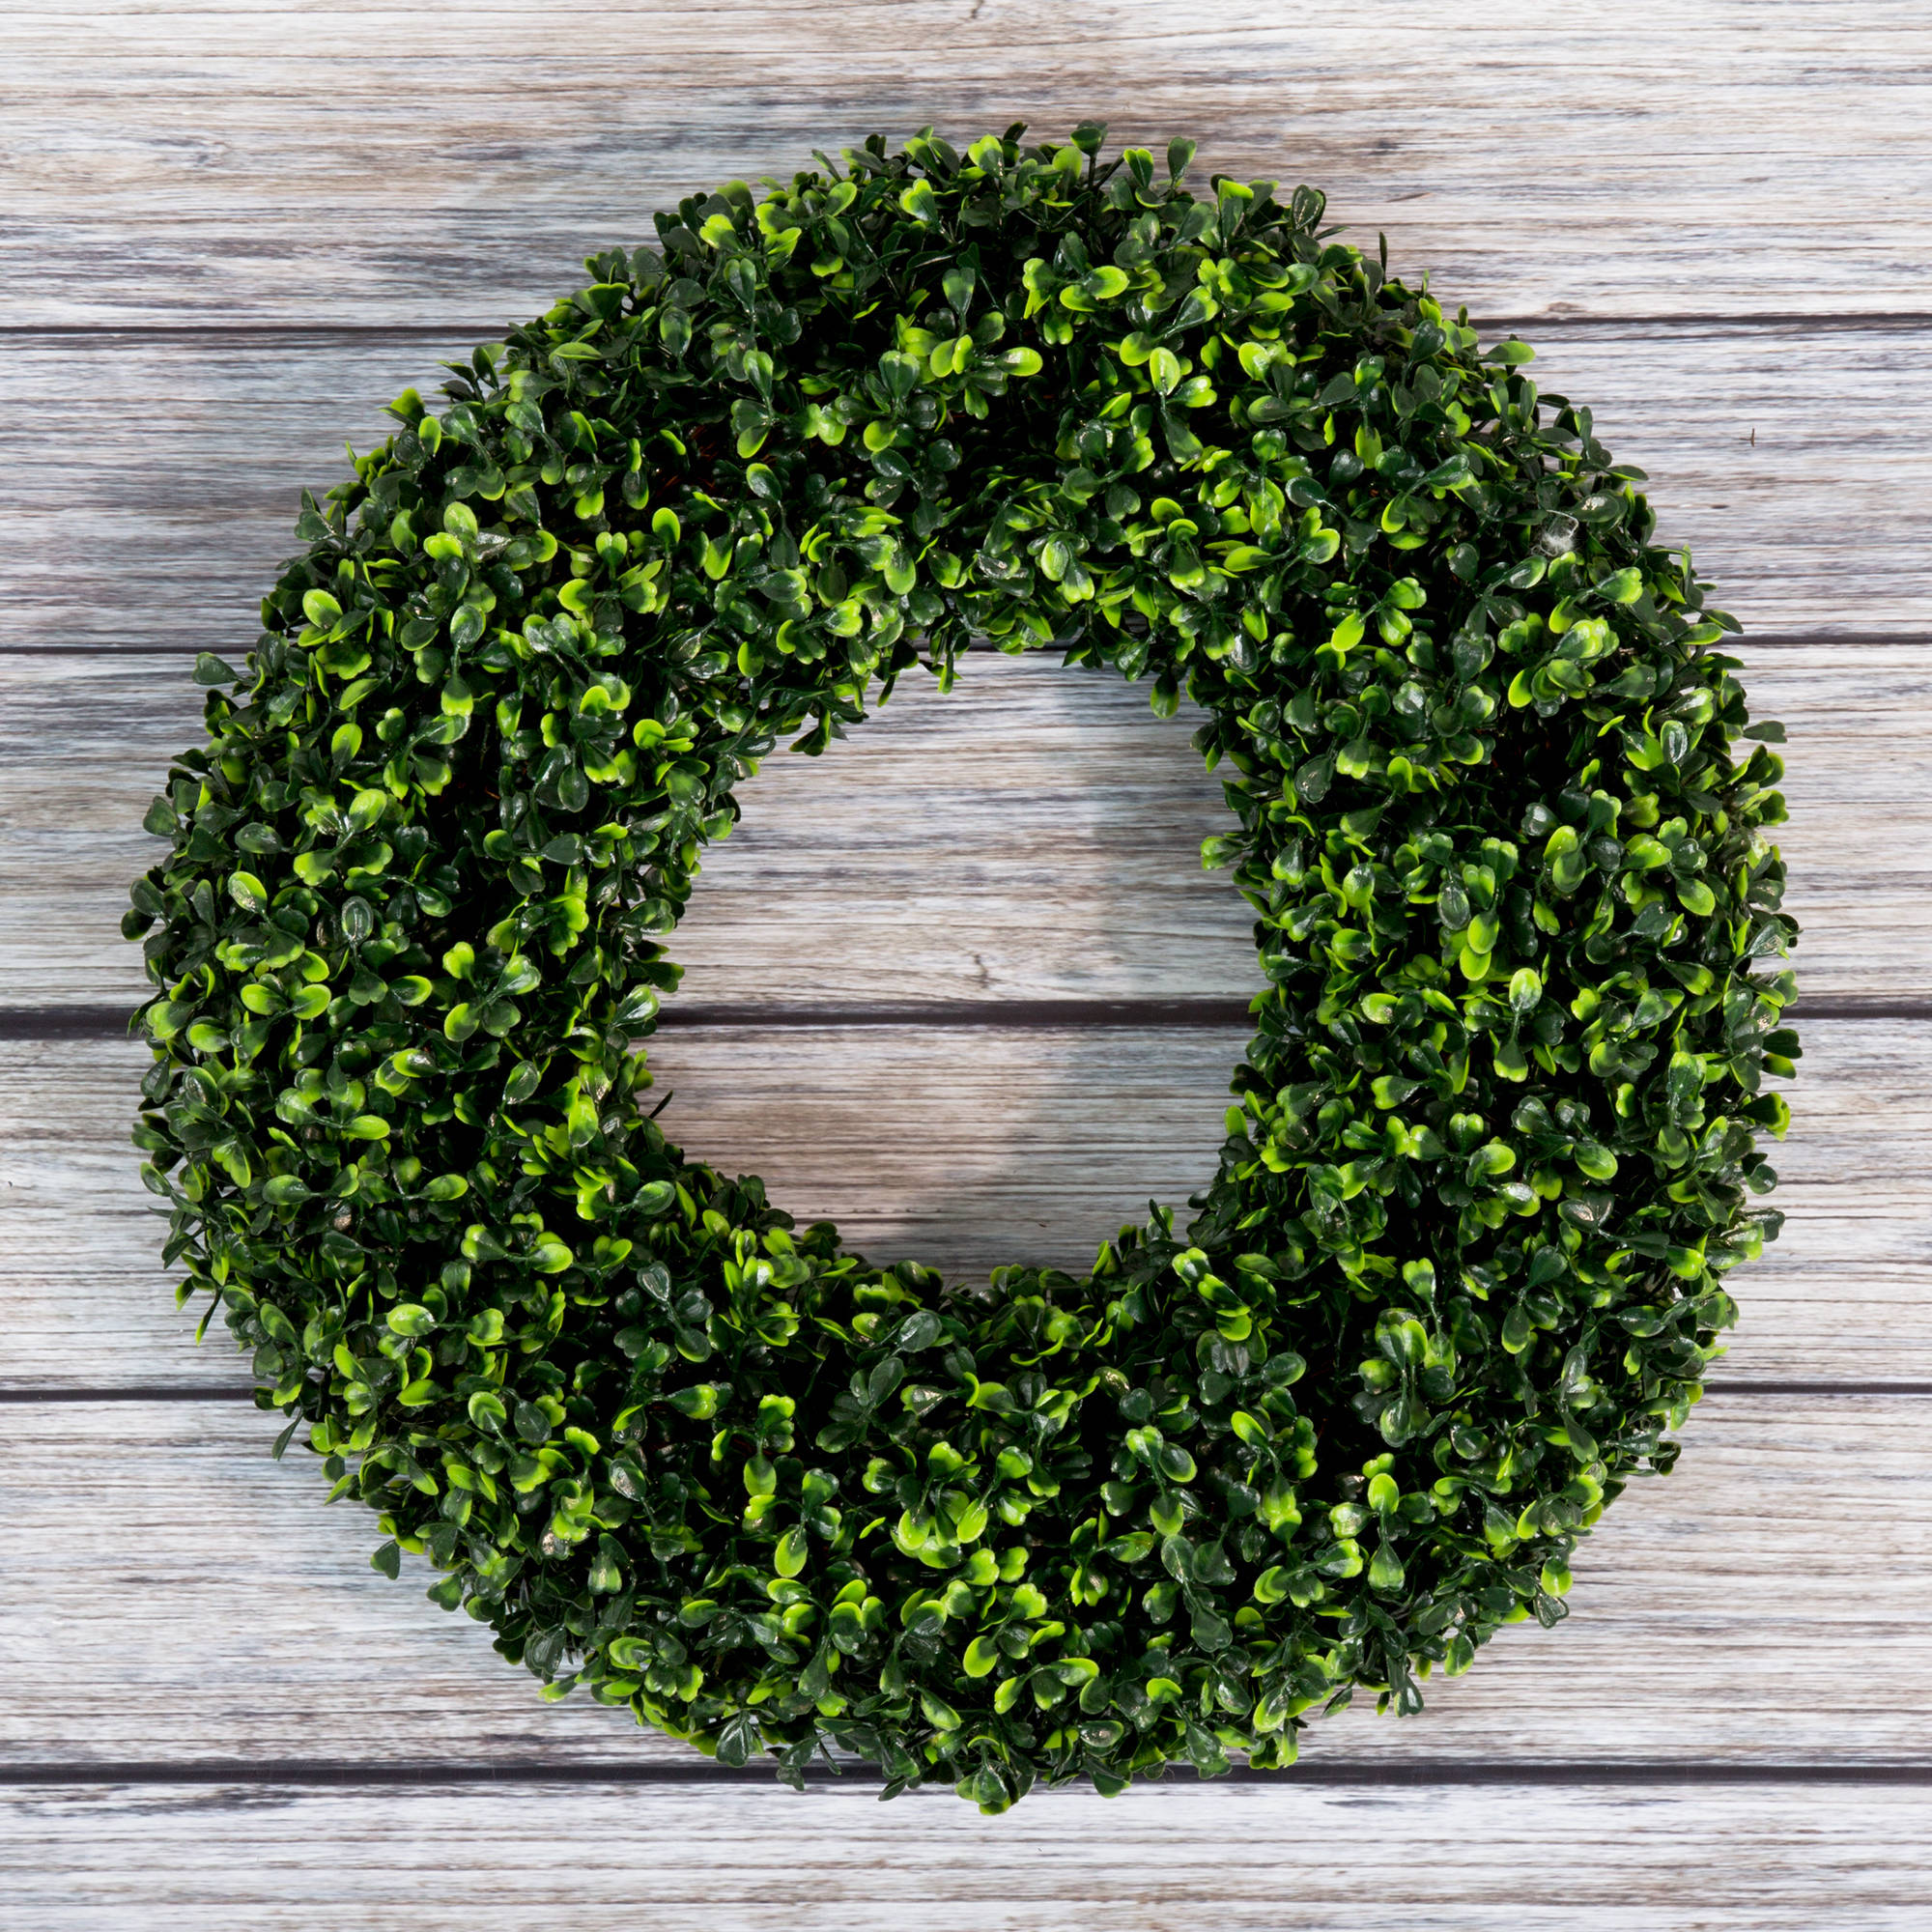 Boxwood Wreath, Artificial Wreath for the Front Door by Pure Garden, Home Décor, UV Resistant 16.5 Inches